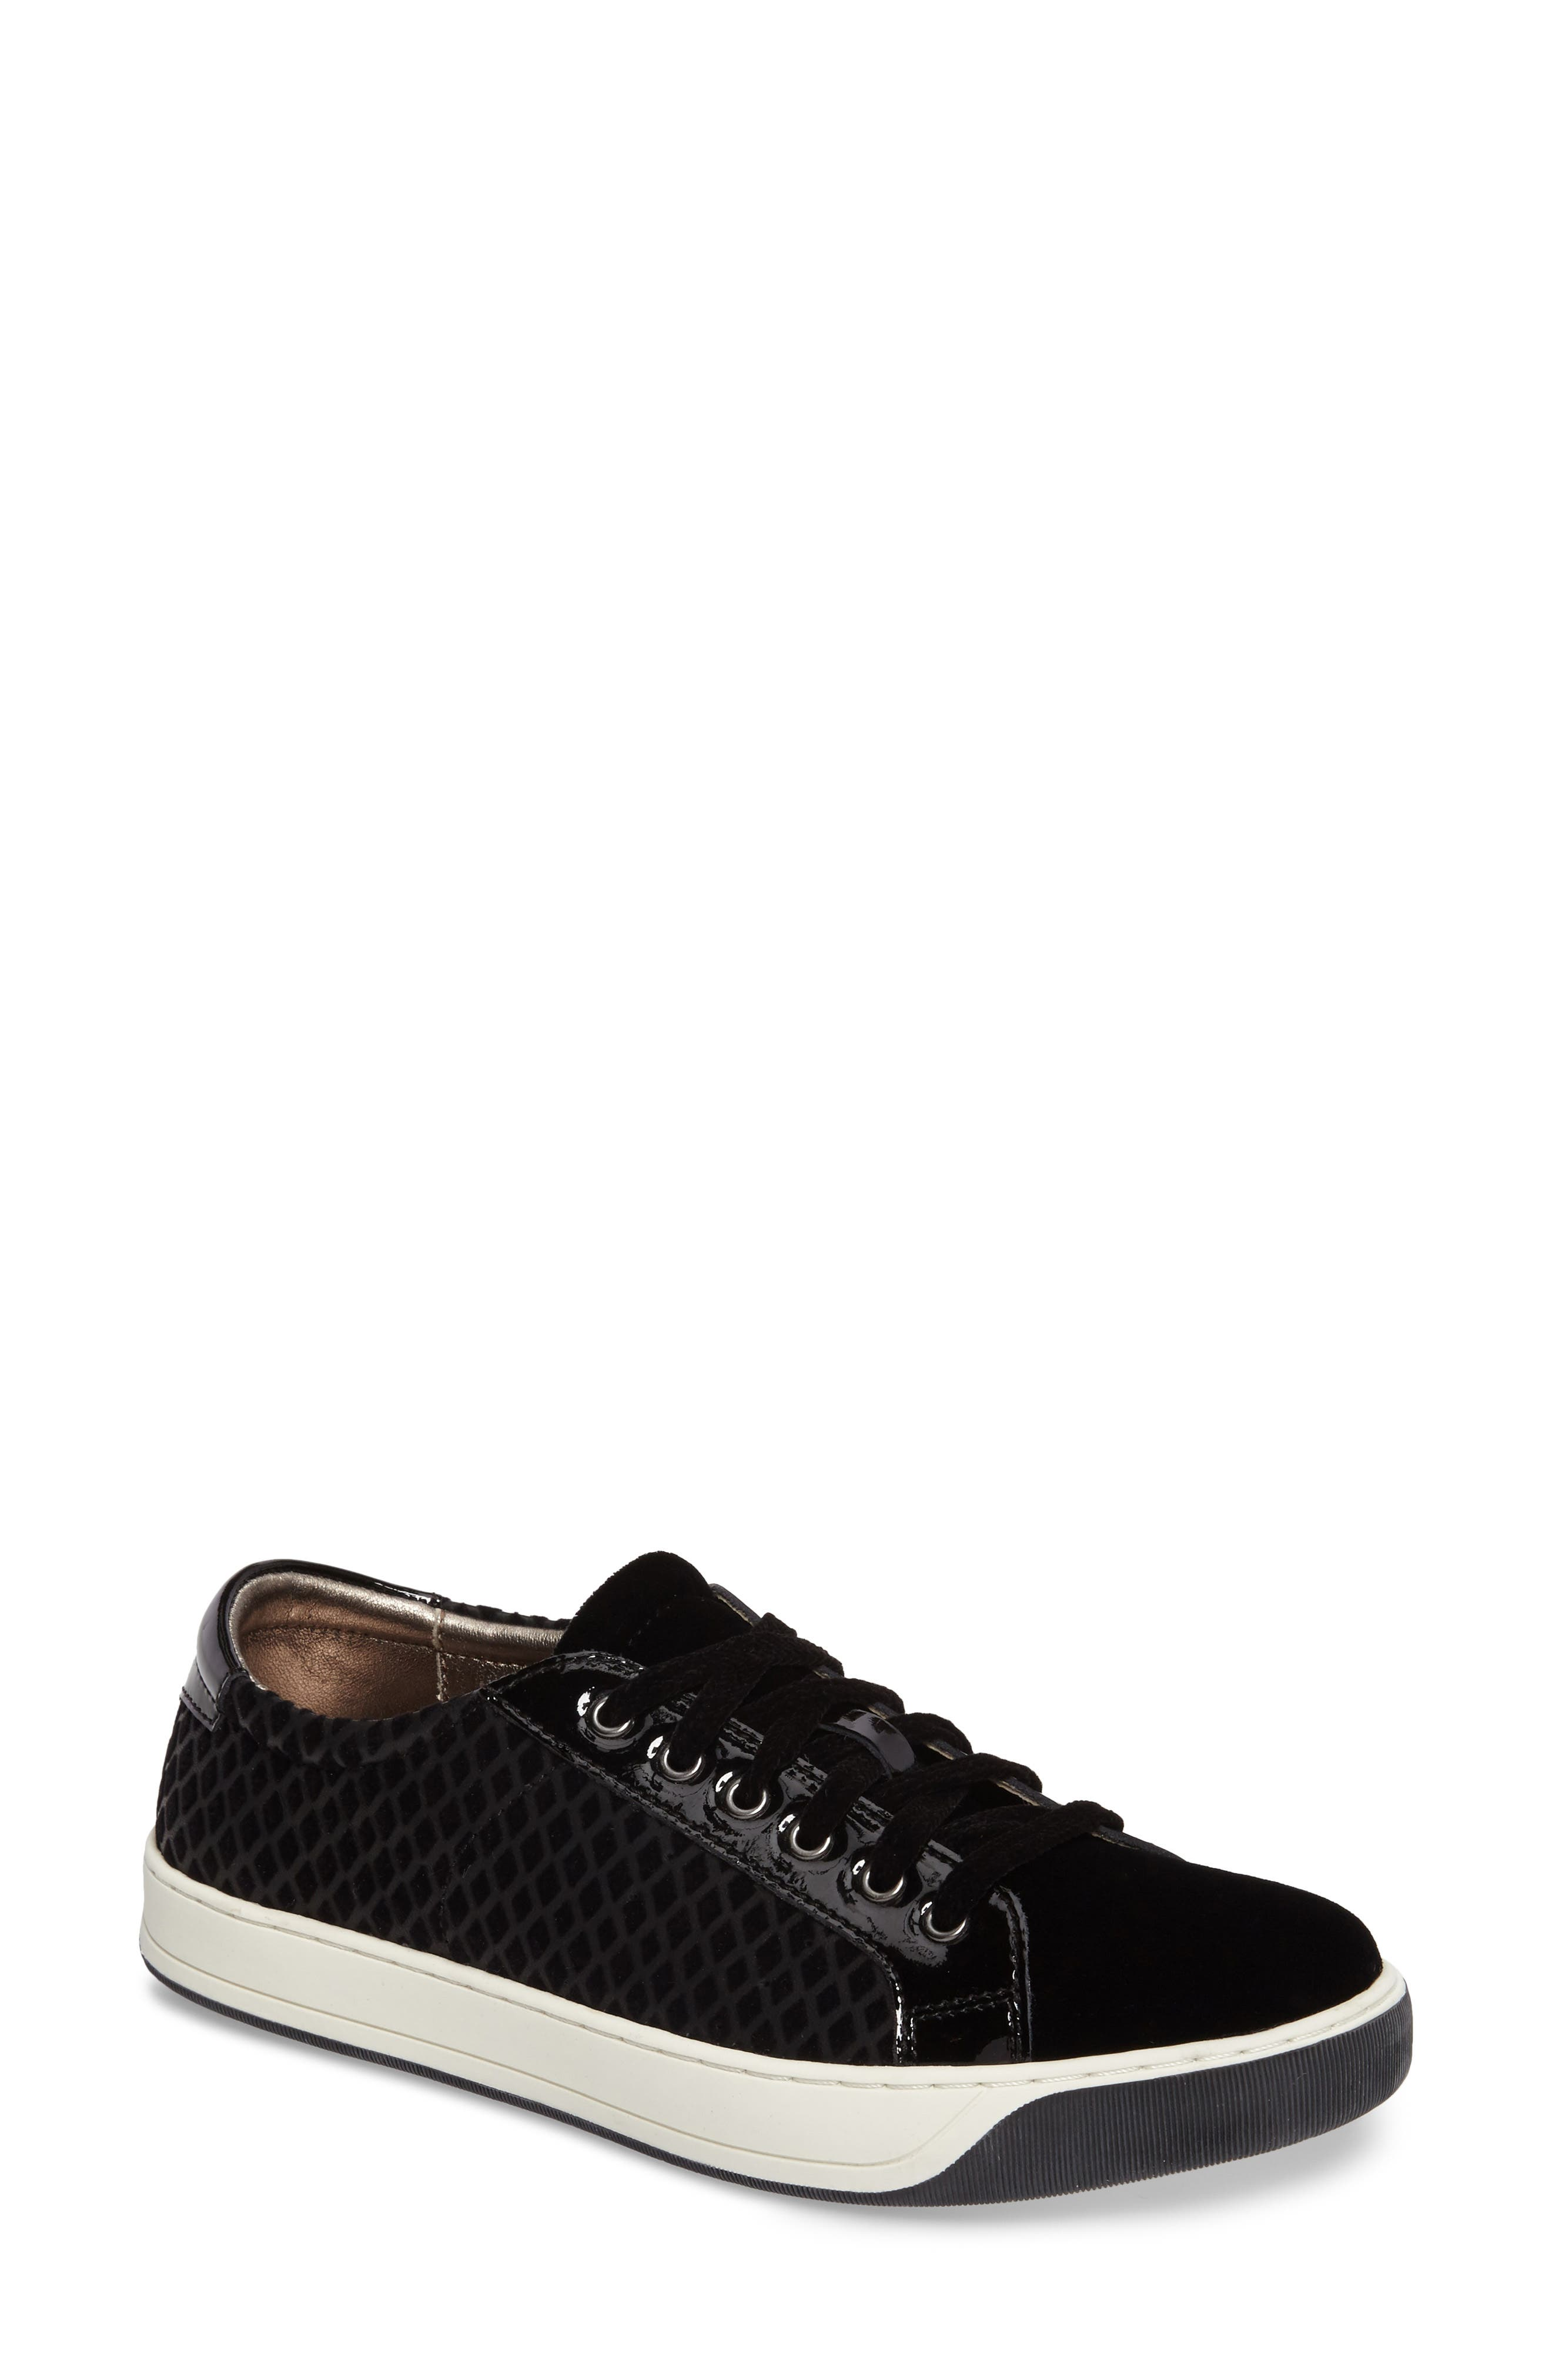 'Emerson' Sneaker,                         Main,                         color, 005